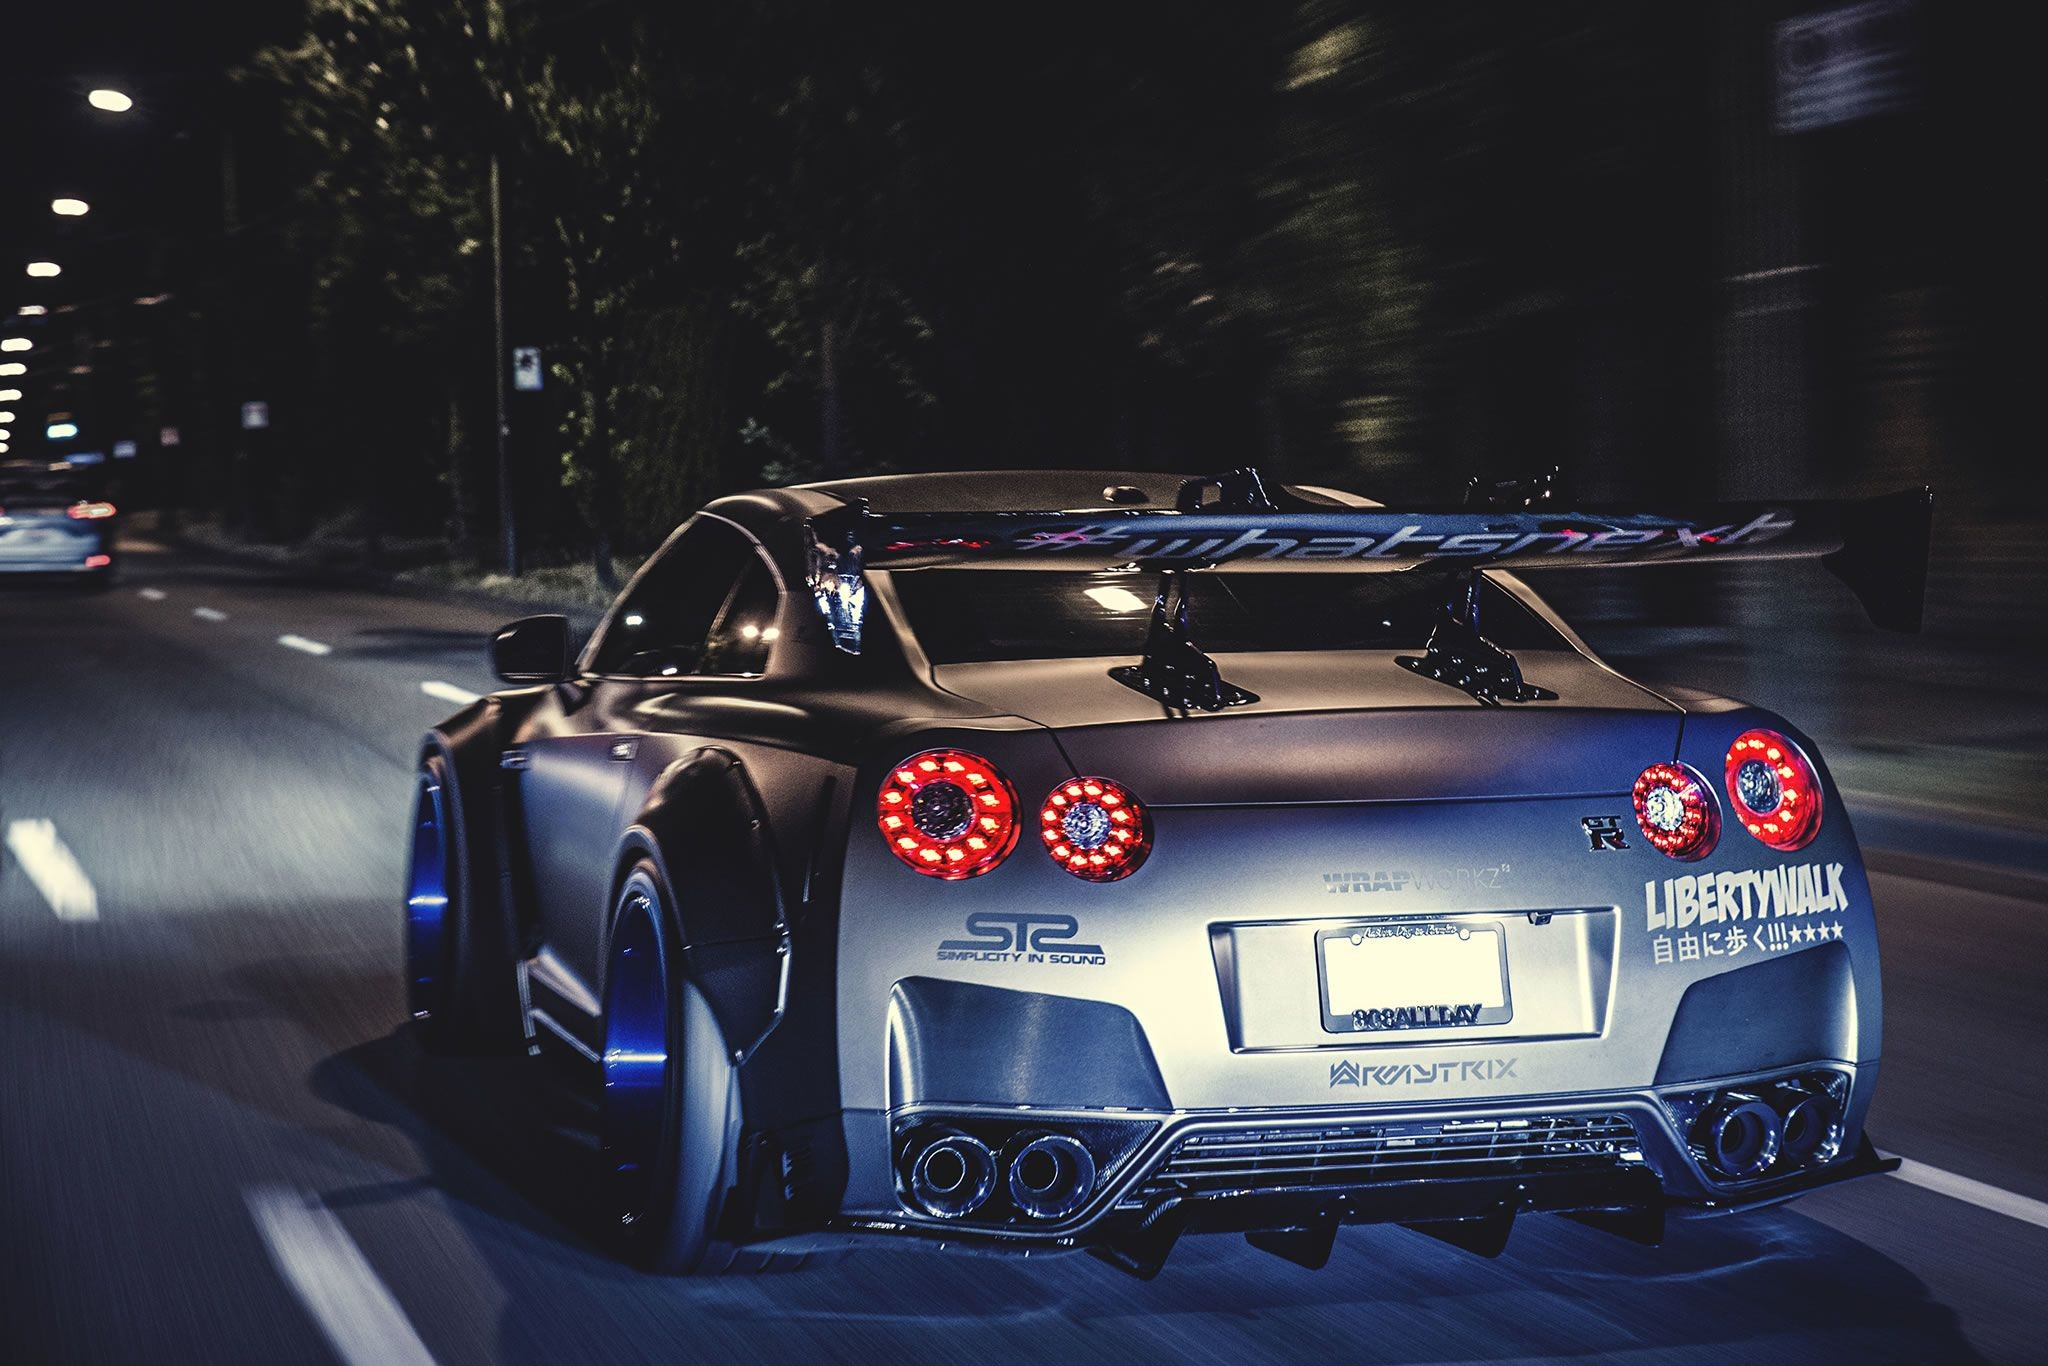 2048x1366 Nissan GTR Liberty Walk Wallpaper